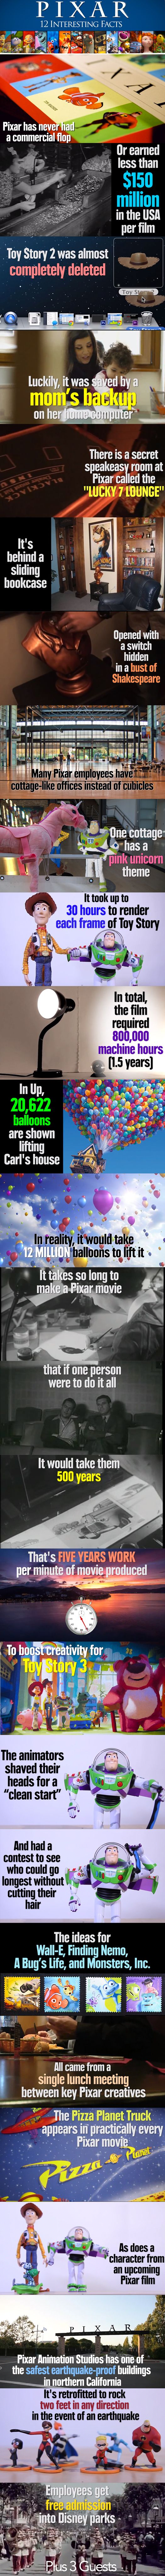 12 Interesting Facts about Disney's Pixar. I want to work for Pixar now!!!